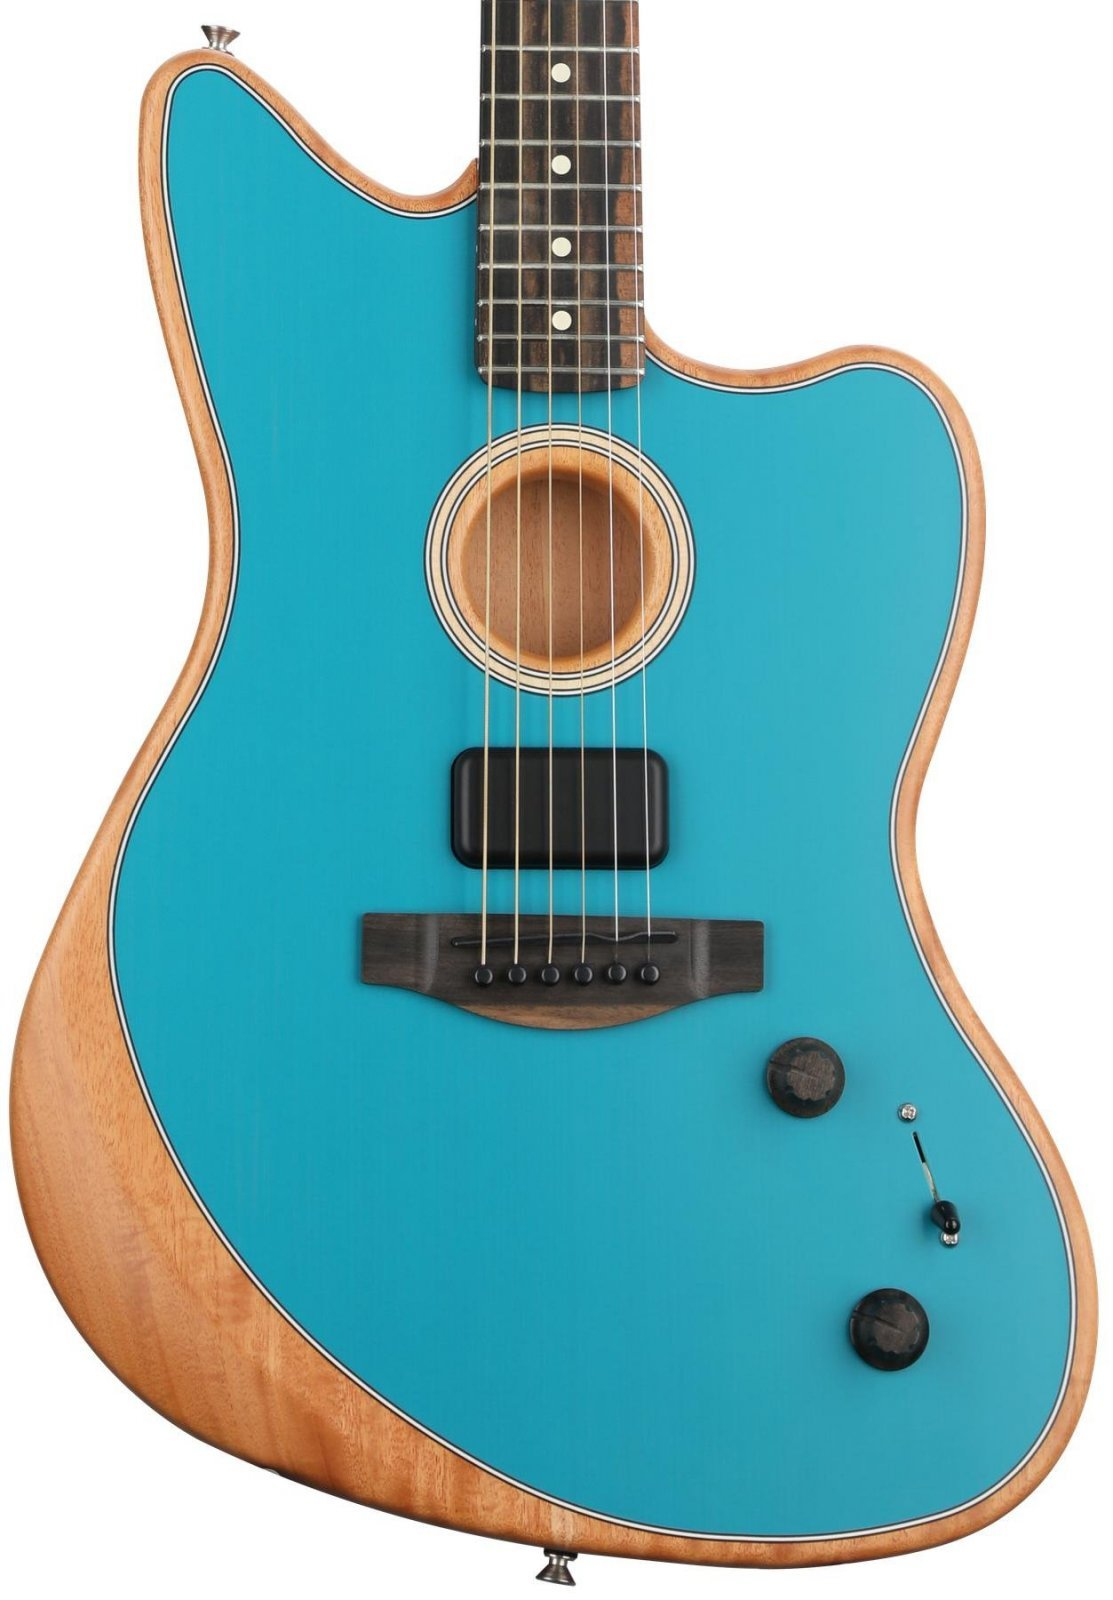 Fender Acoustasonic Jazzmaster with a bag in Ocean Turquois